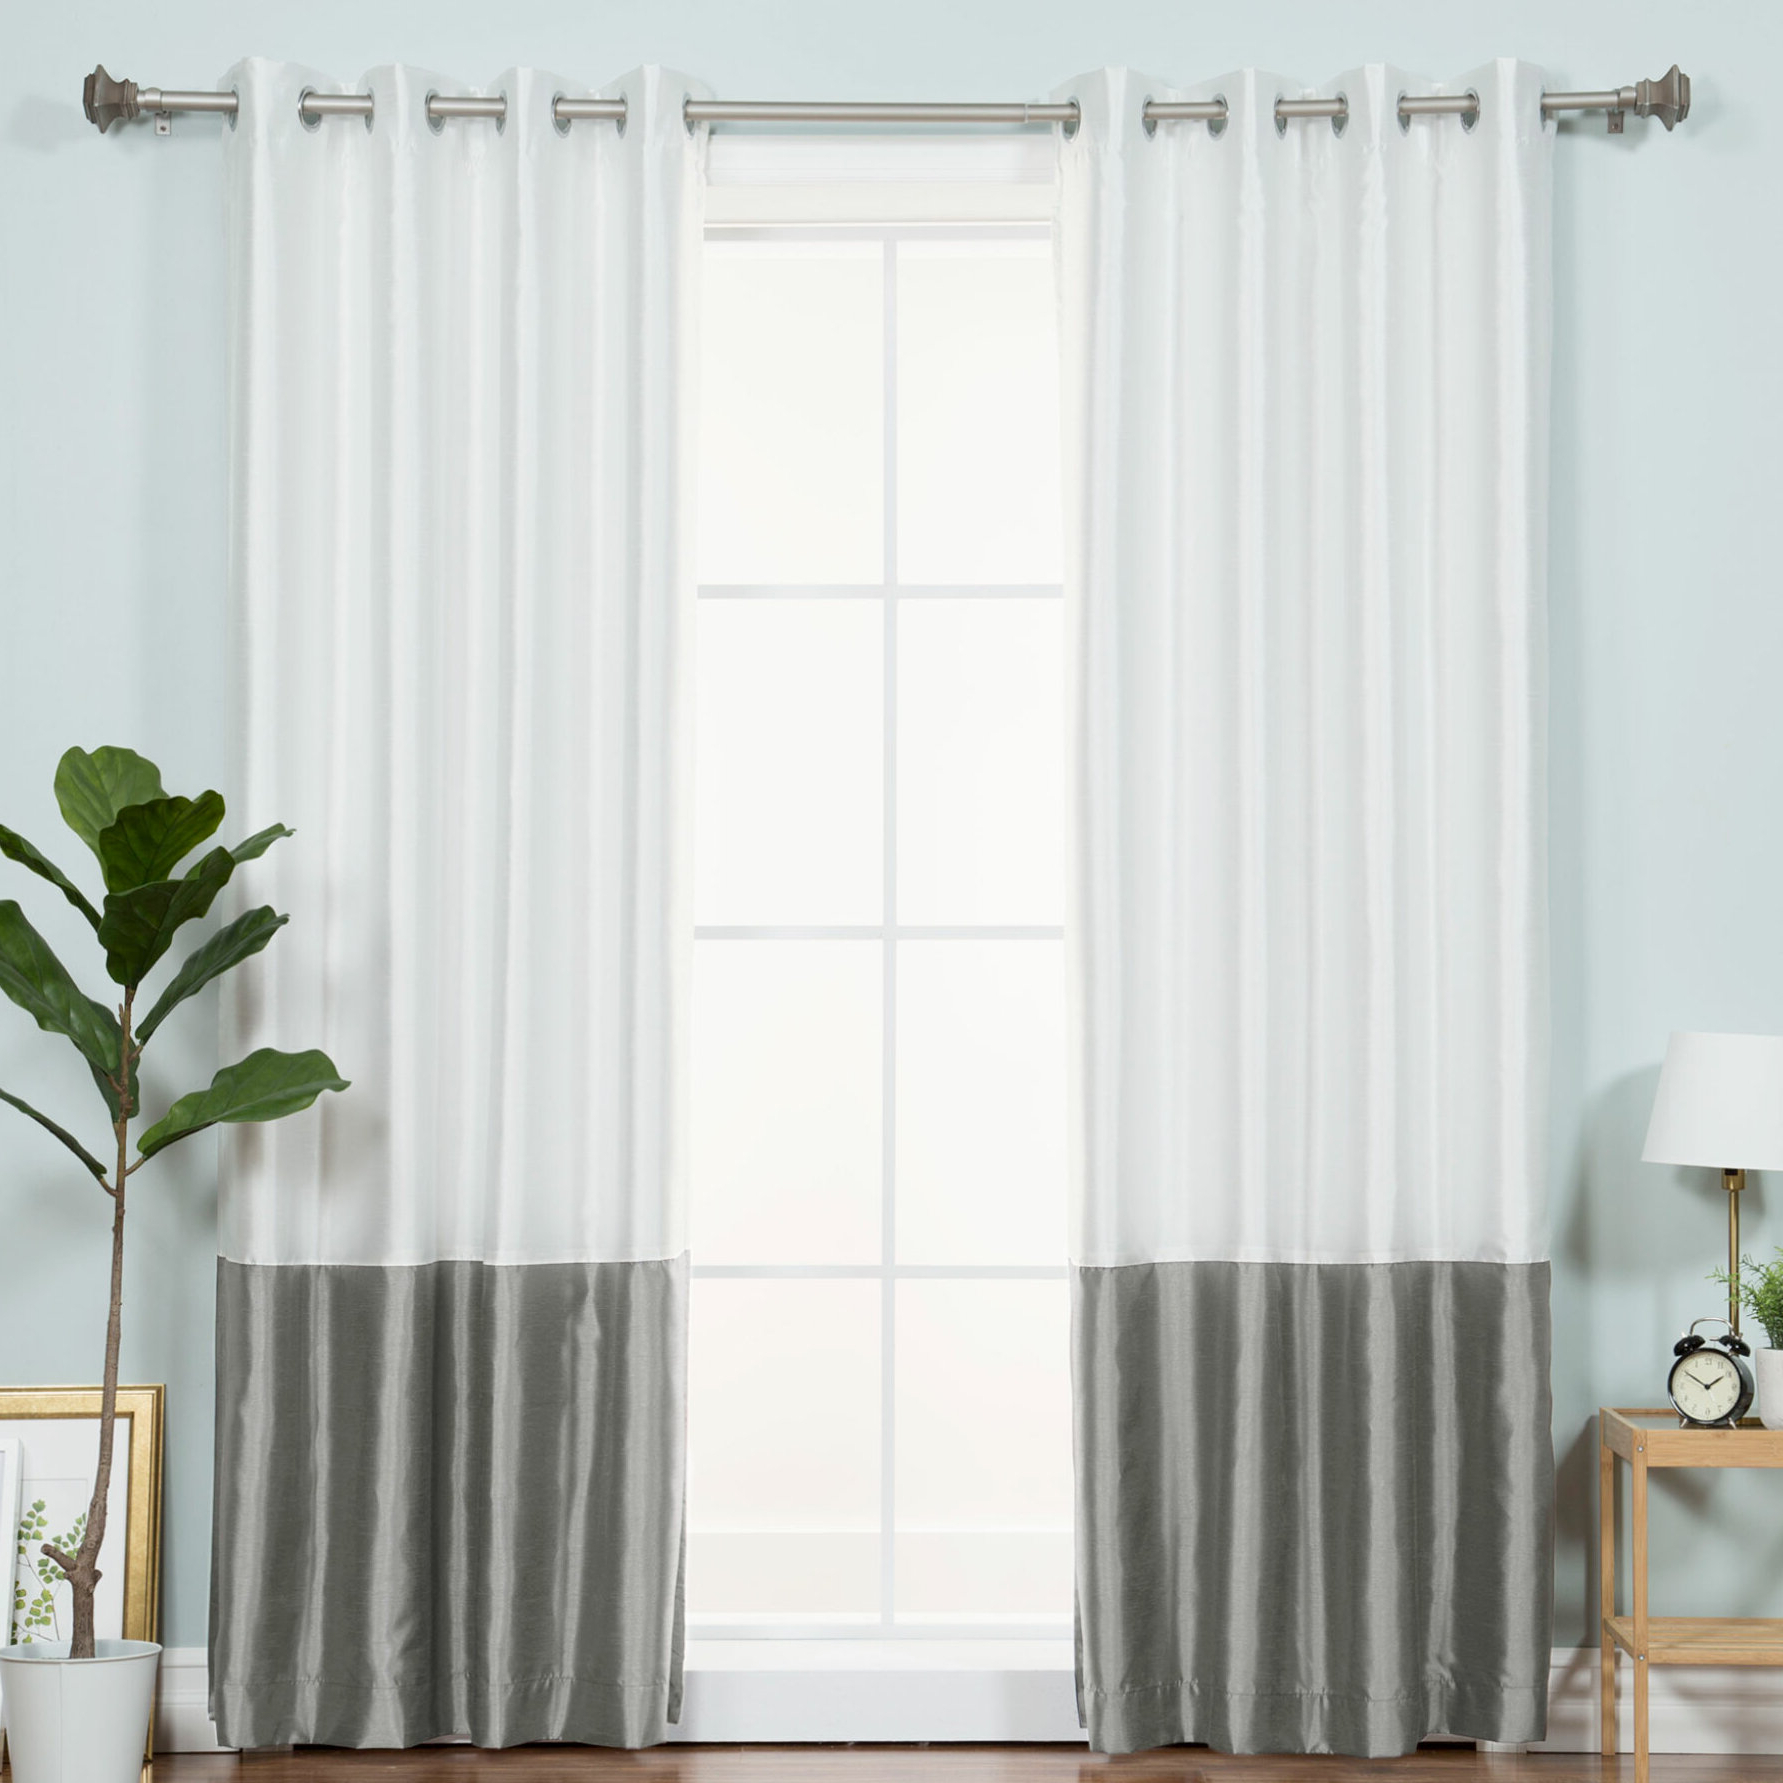 Recent Bicester Solid Blackout Thermal Grommet Single Curtain Panel With Regard To Luxury Collection Cranston Sheer Curtain Panel Pairs (Gallery 10 of 20)